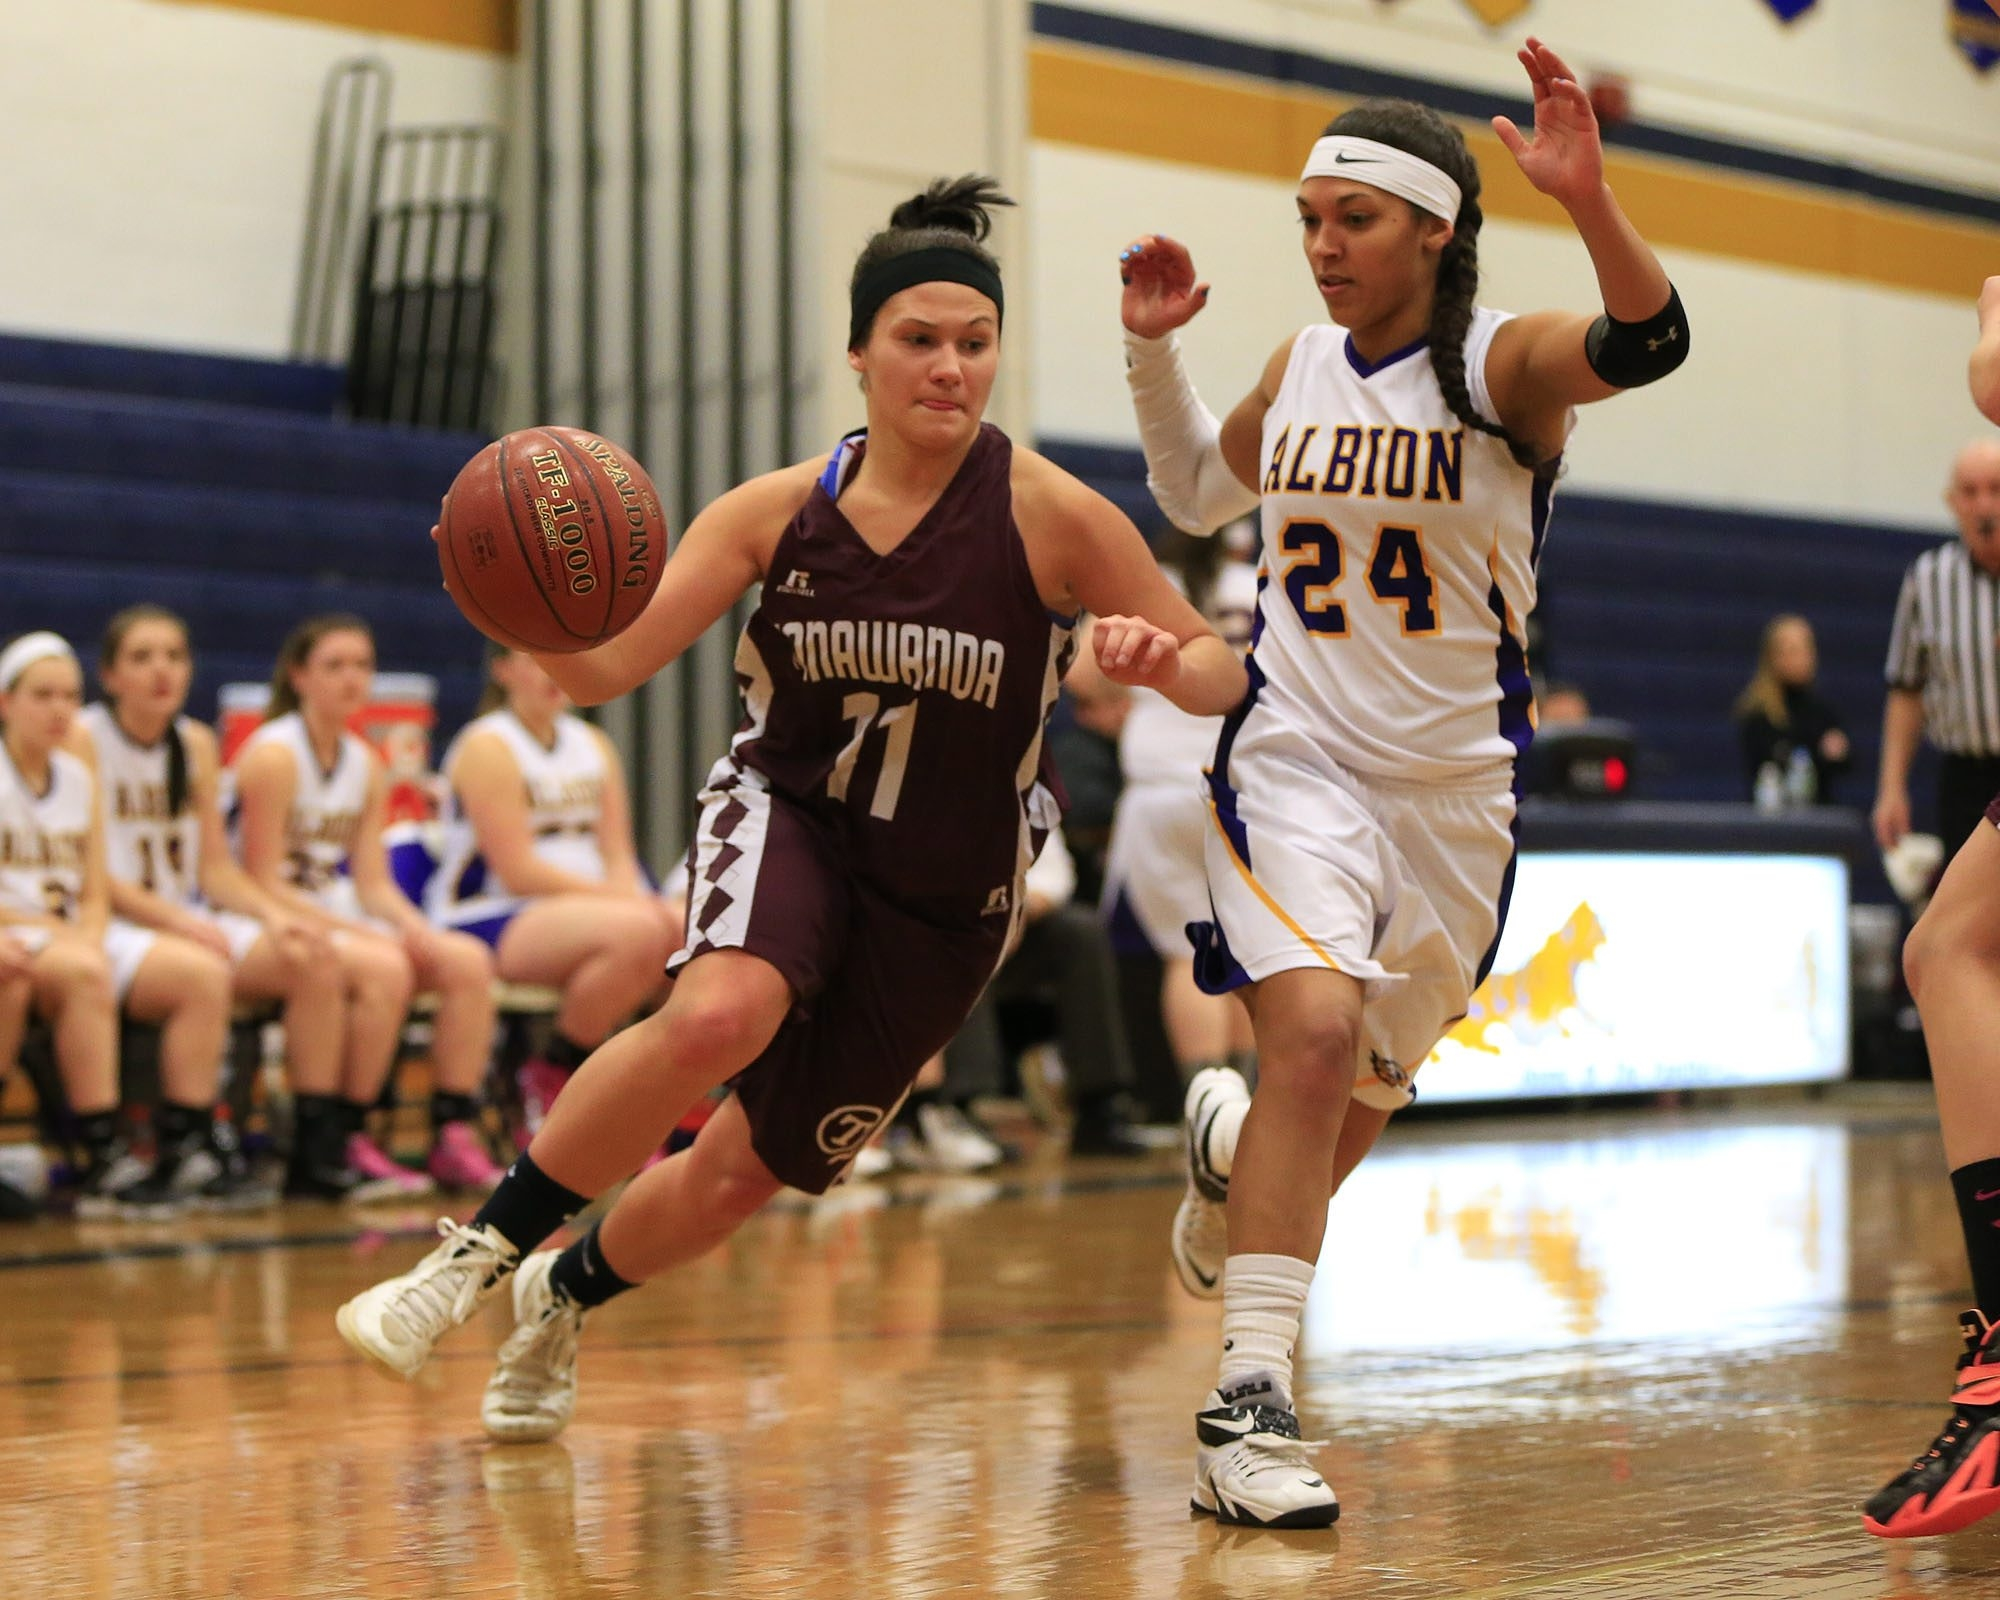 Tonawanda's Savanna Allen drives to the basket as she is defended by Albion's Justice Nauden during action at Sweet Home High School.